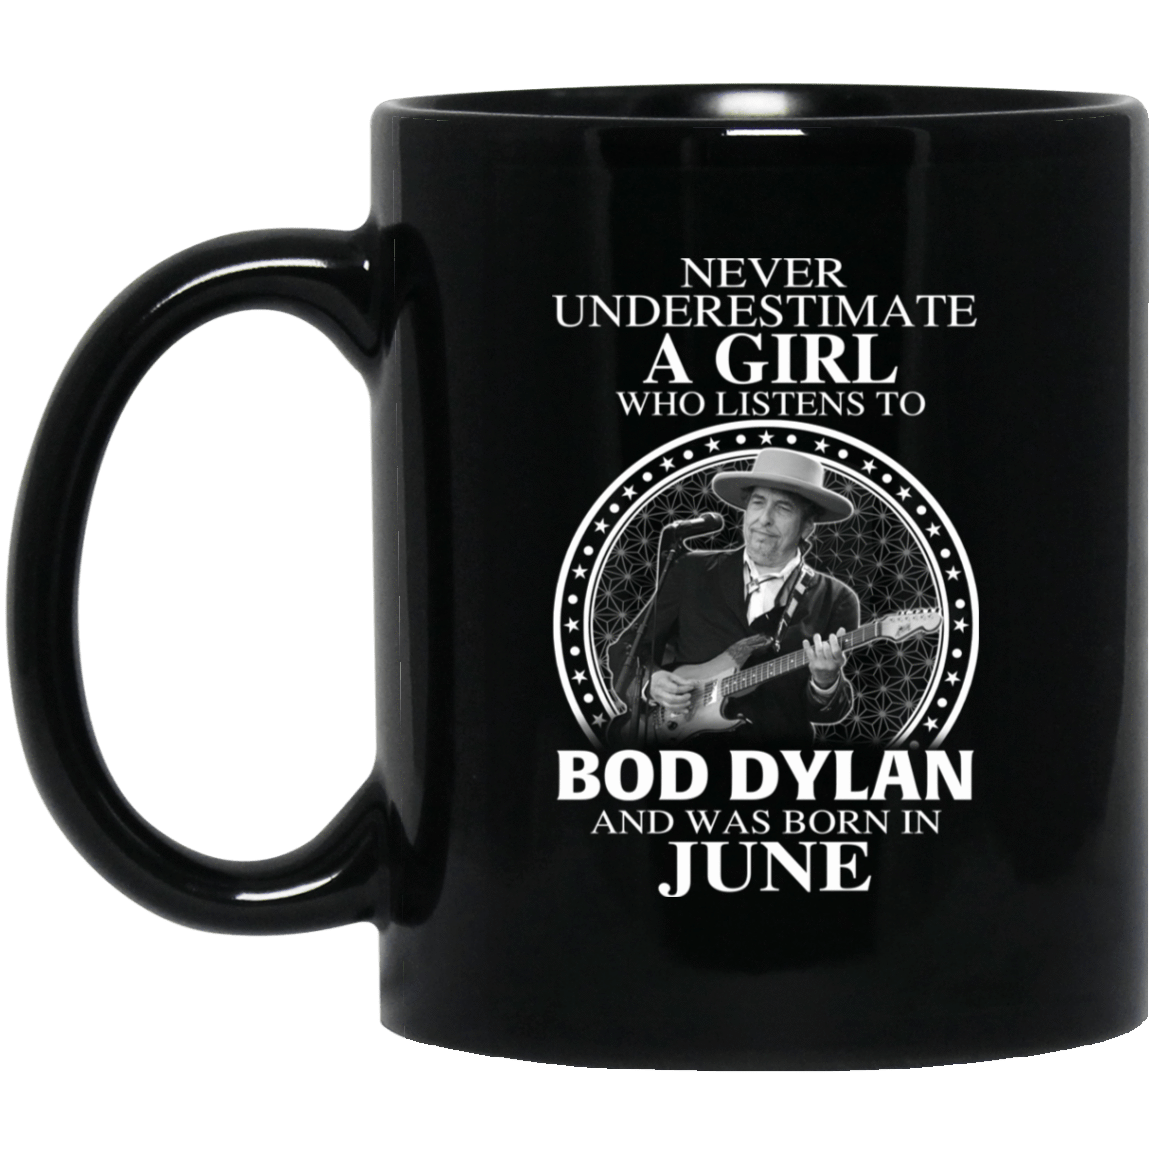 A Girl Who Listens To Bob Dylan And Was Born In June Mug 1065-10181-76153672-49307 - Tee Ript